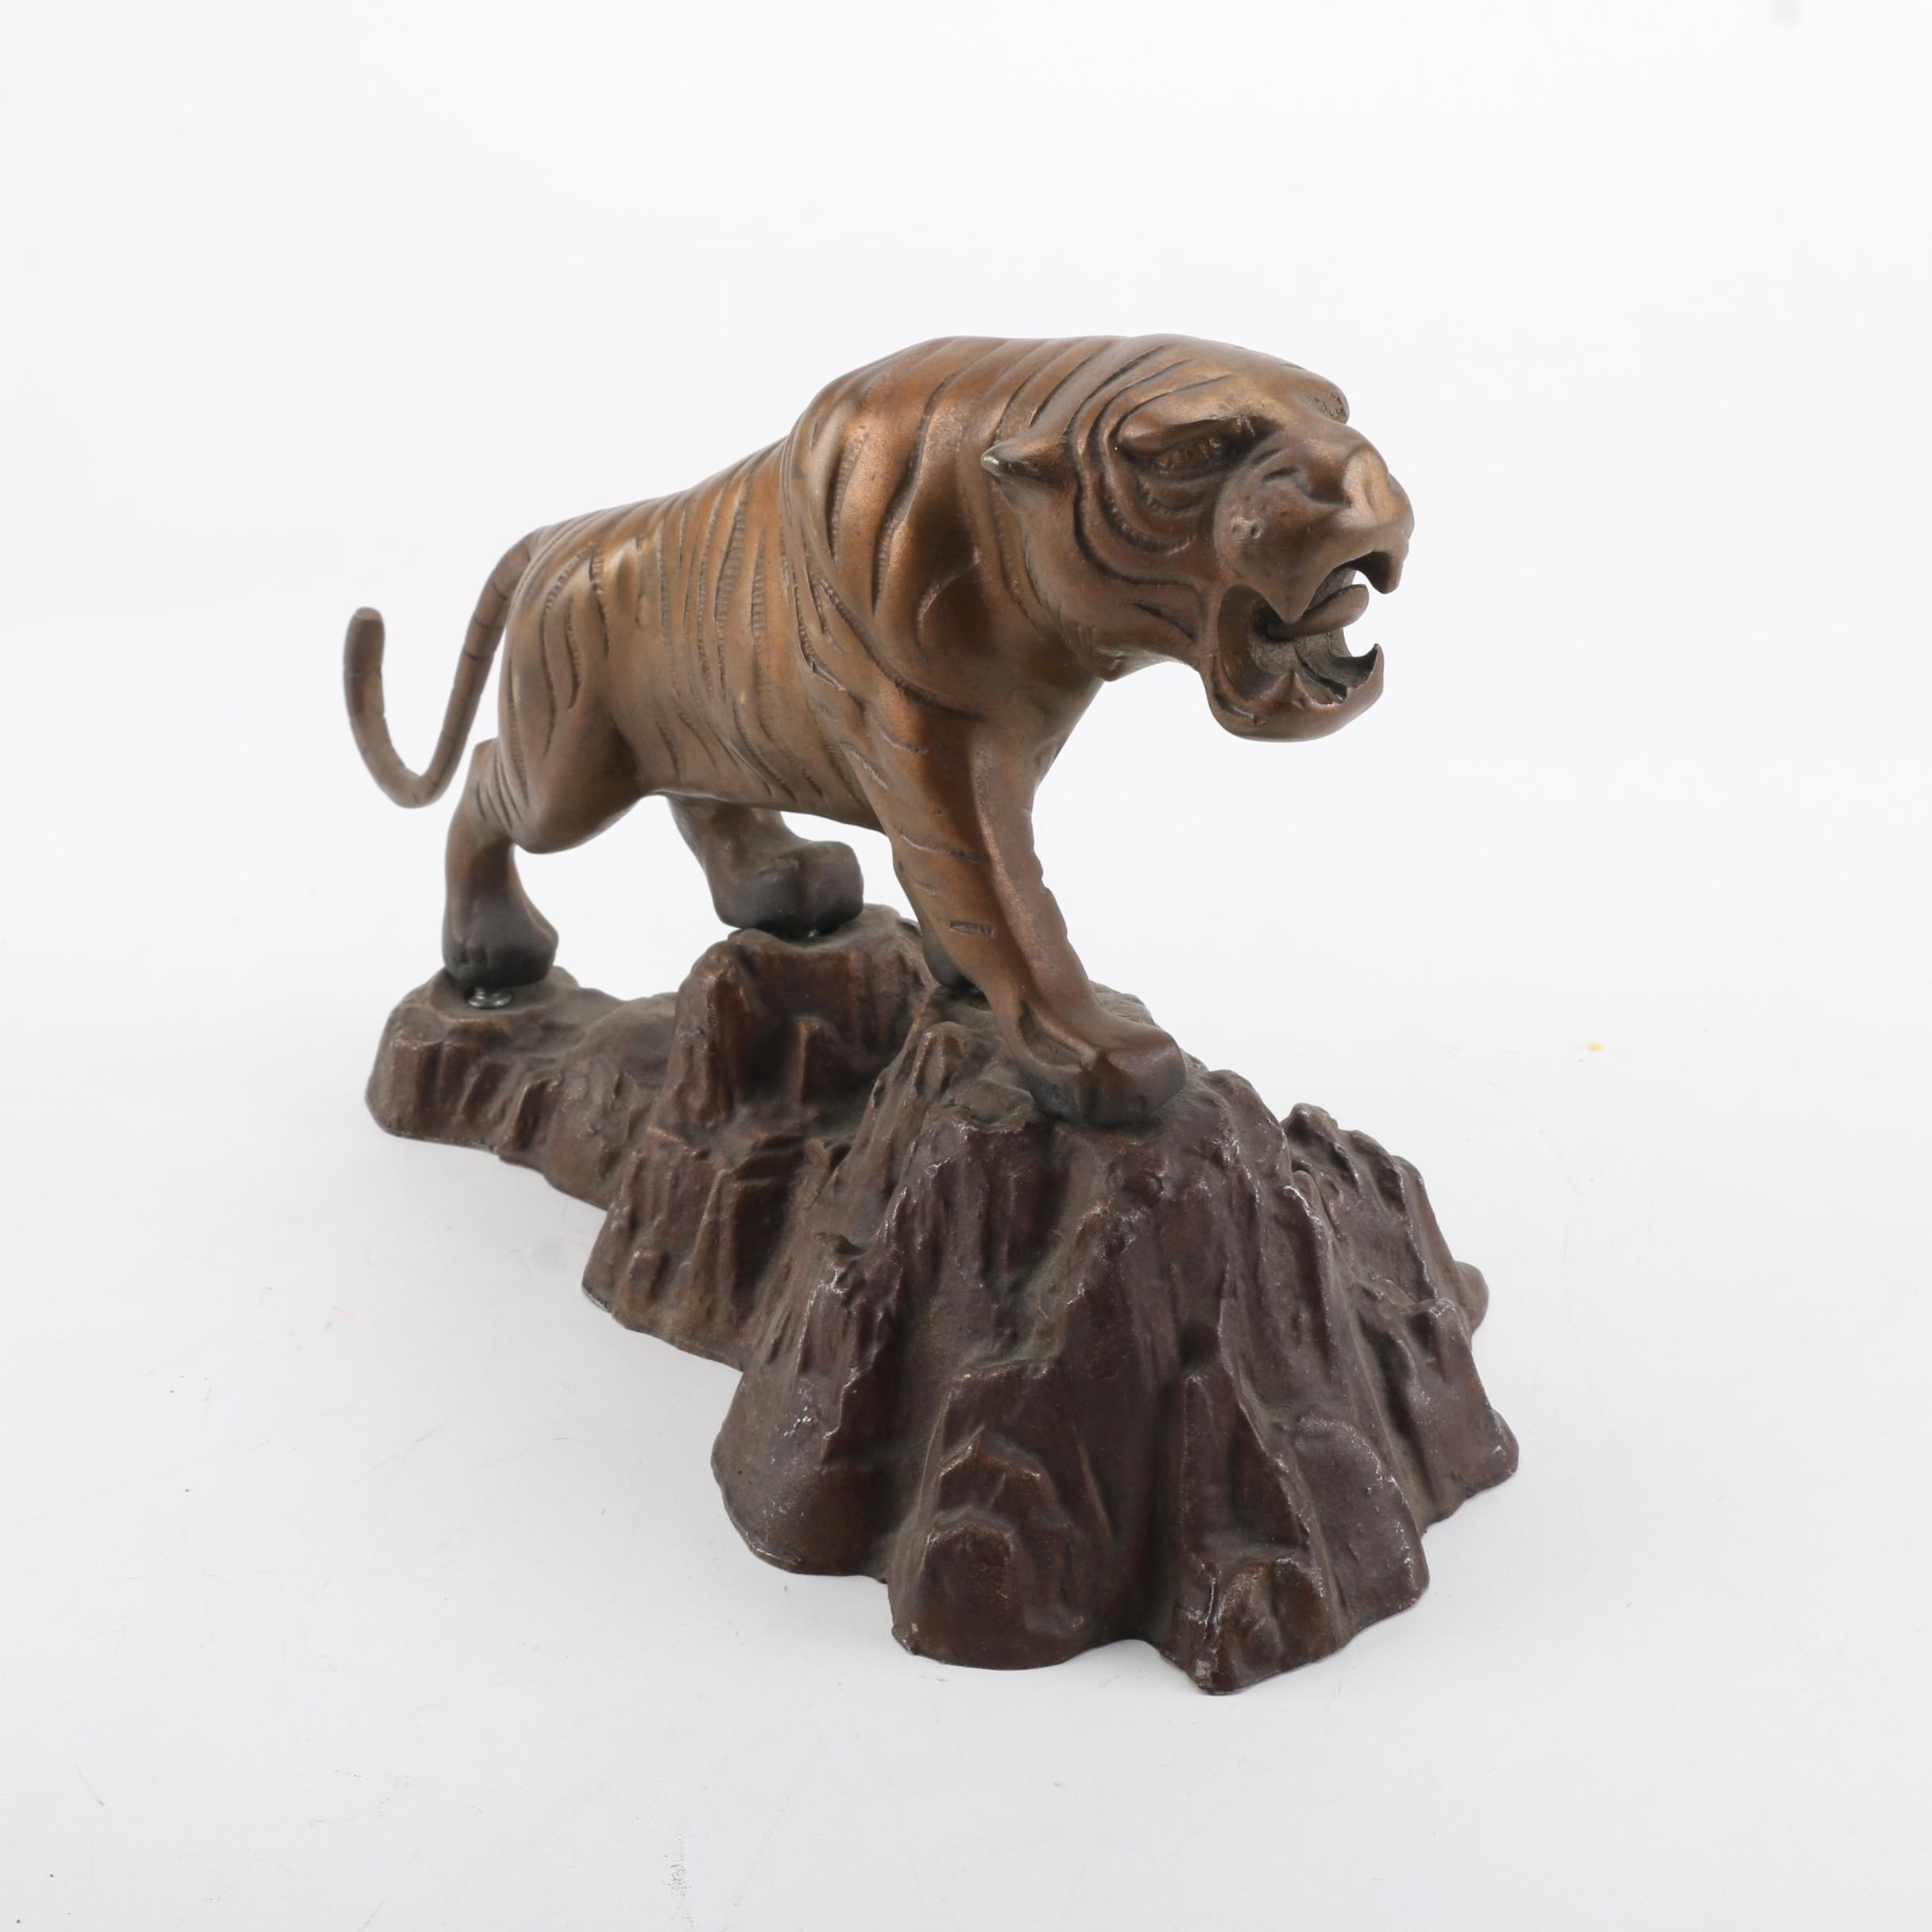 Metal Tiger Figurine on a Base